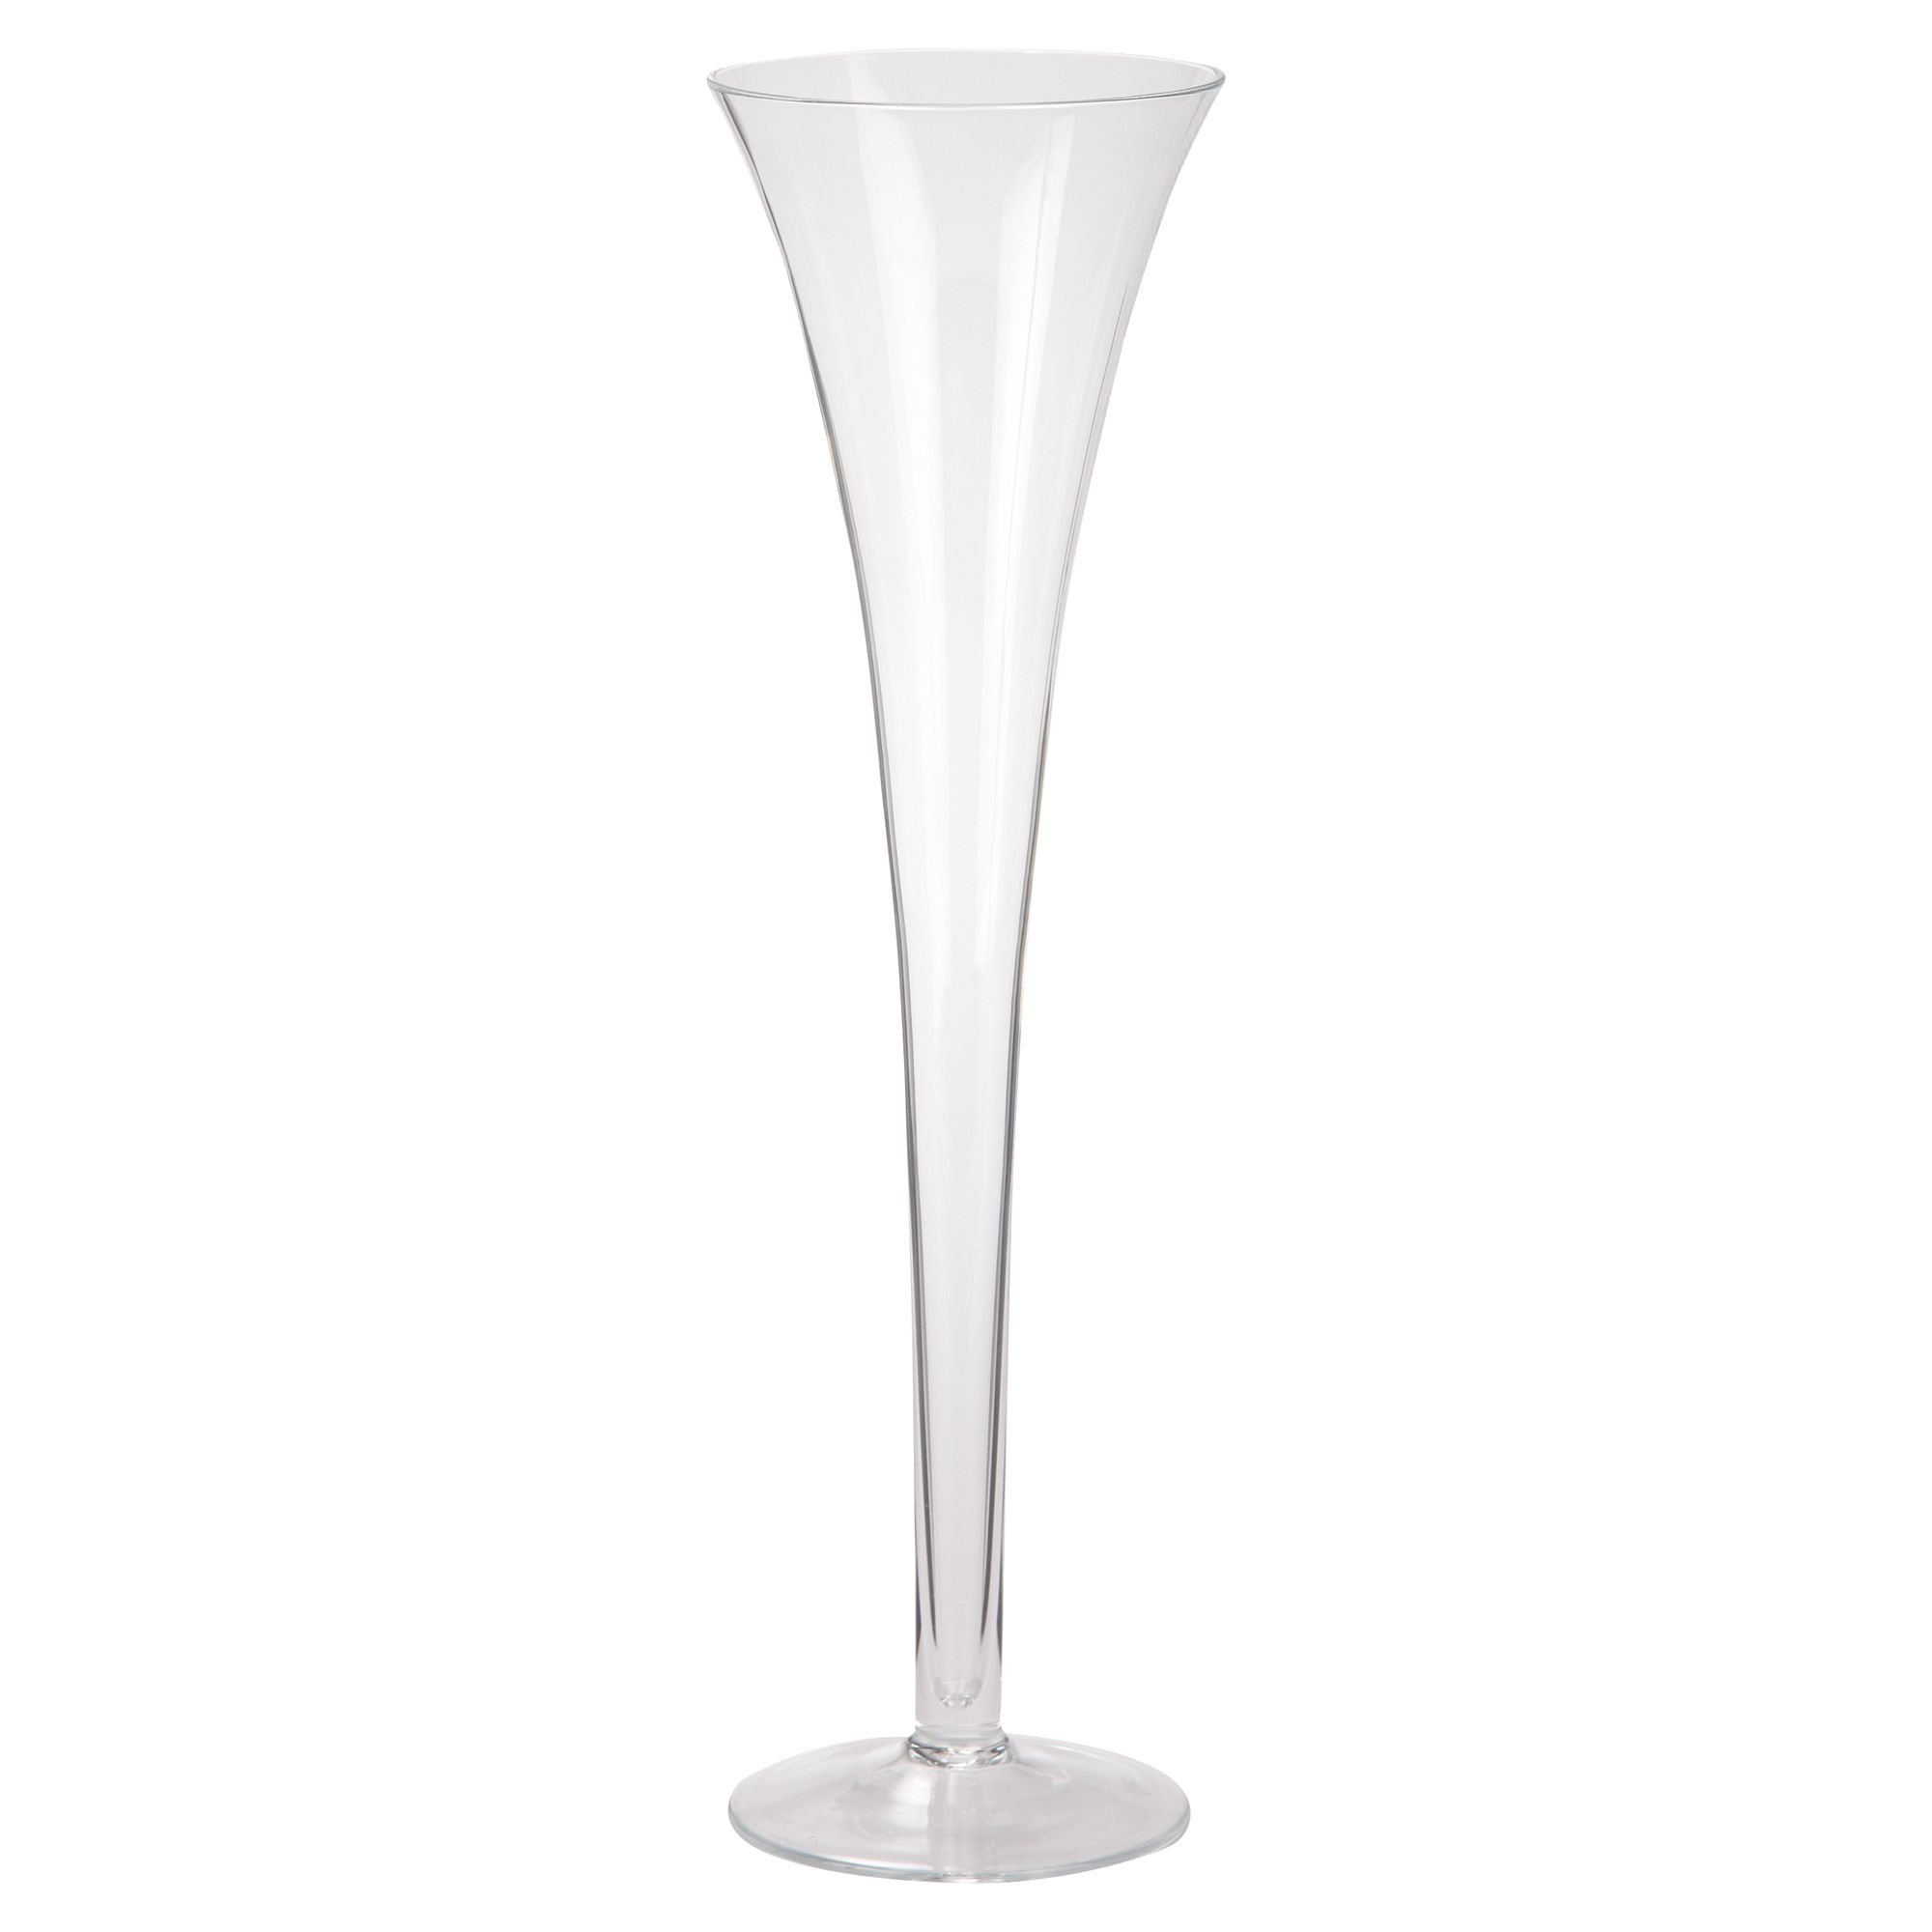 Bar Hollow stem champagne flute